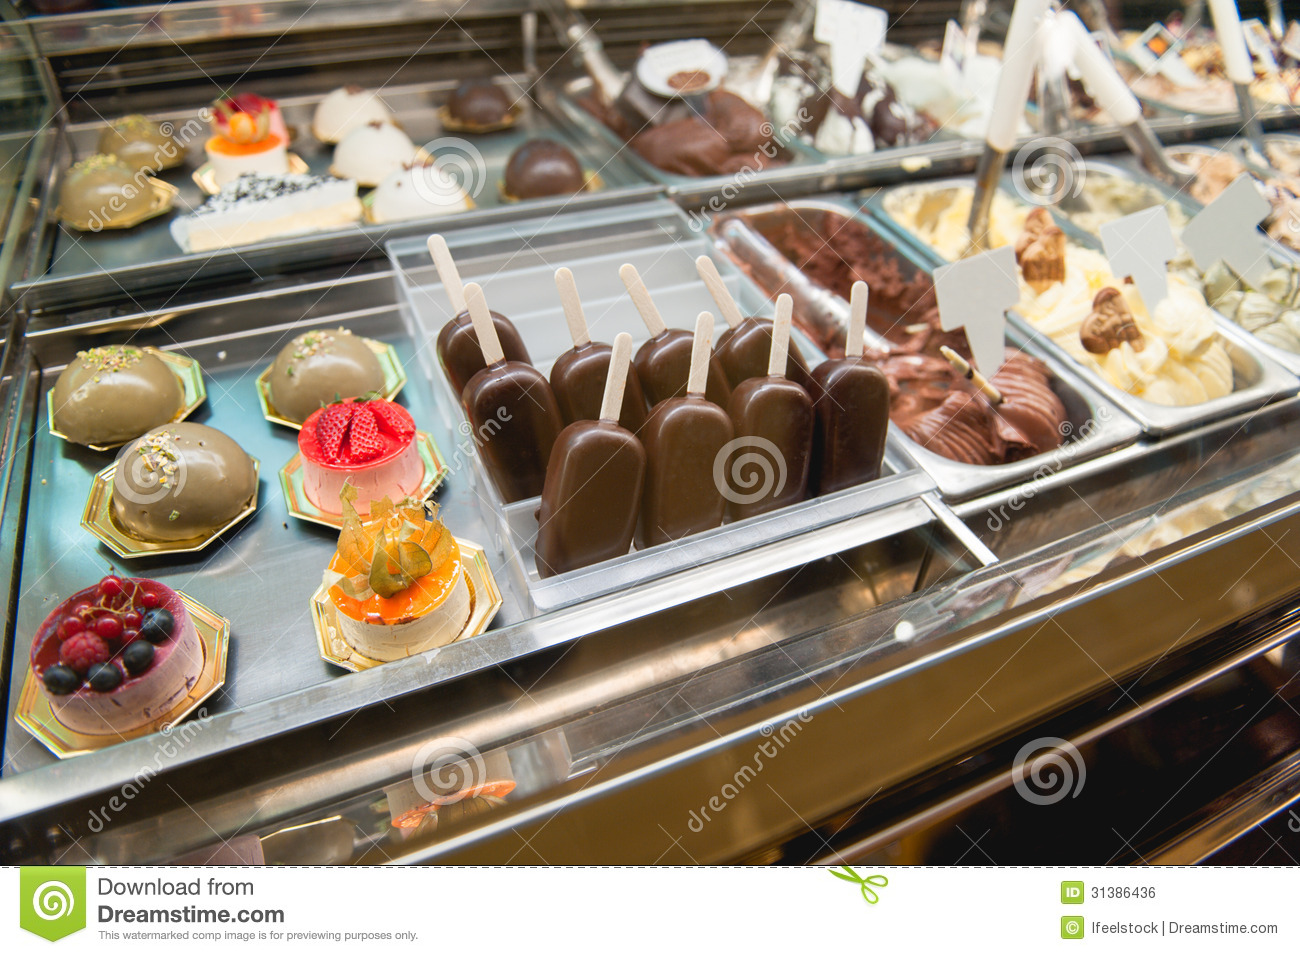 pastry industry philippines Starting a bakery in the philippines august 1, 2016, 7:21 pm october 17, 2014 for anna, baking was a hobby she enjoyed as a young teenager now that she has a.